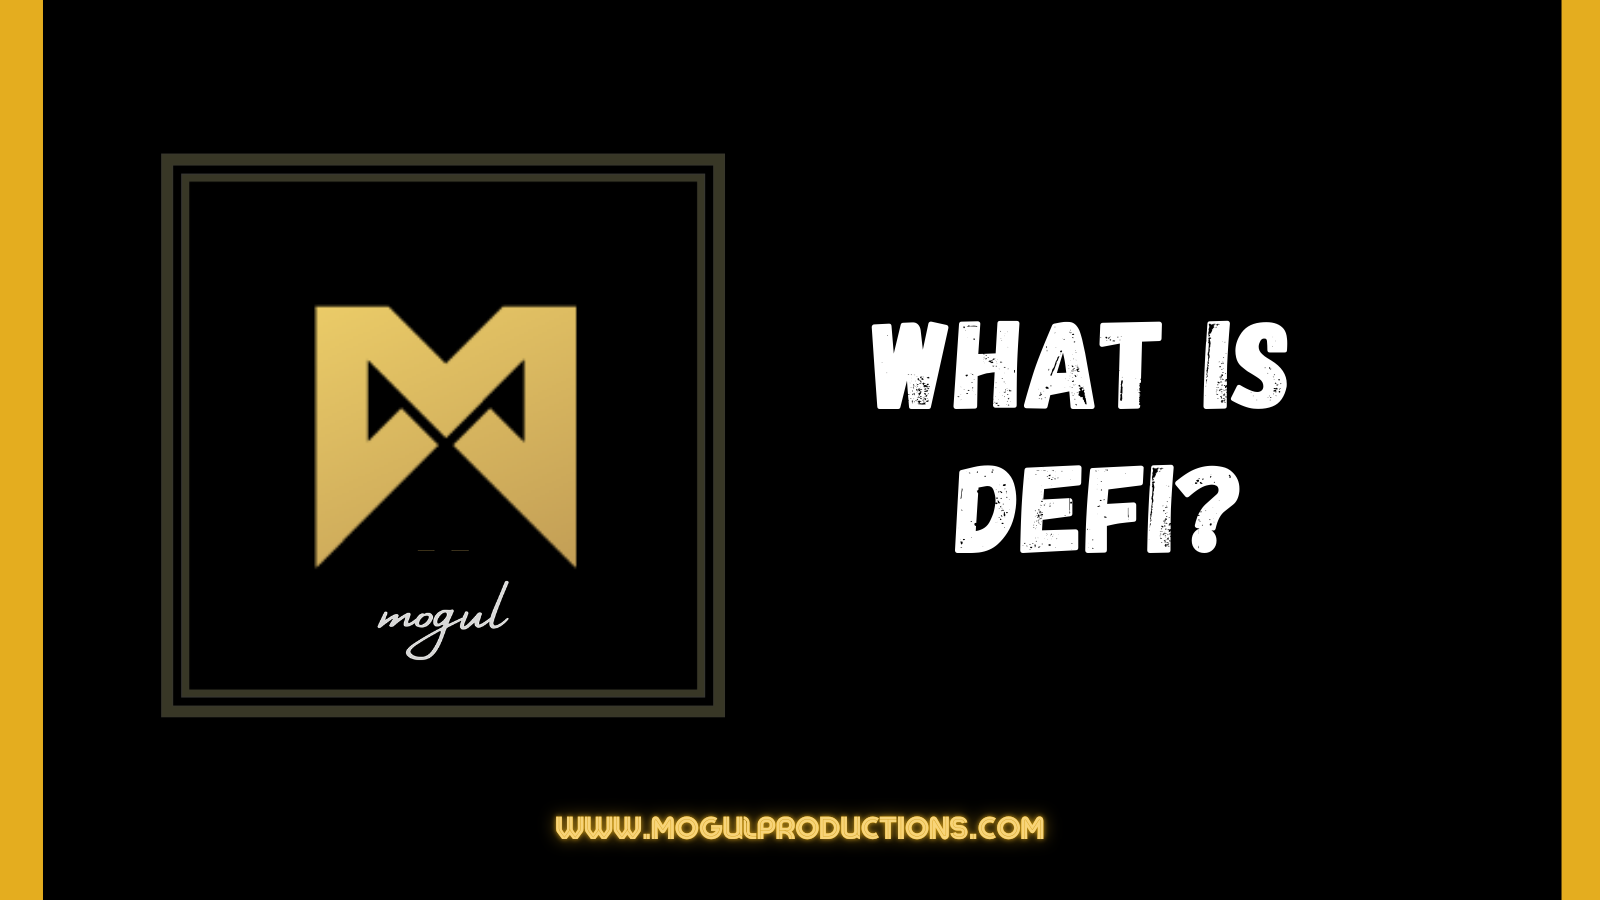 What is DeFi in Crypto & Why Do We Need It?